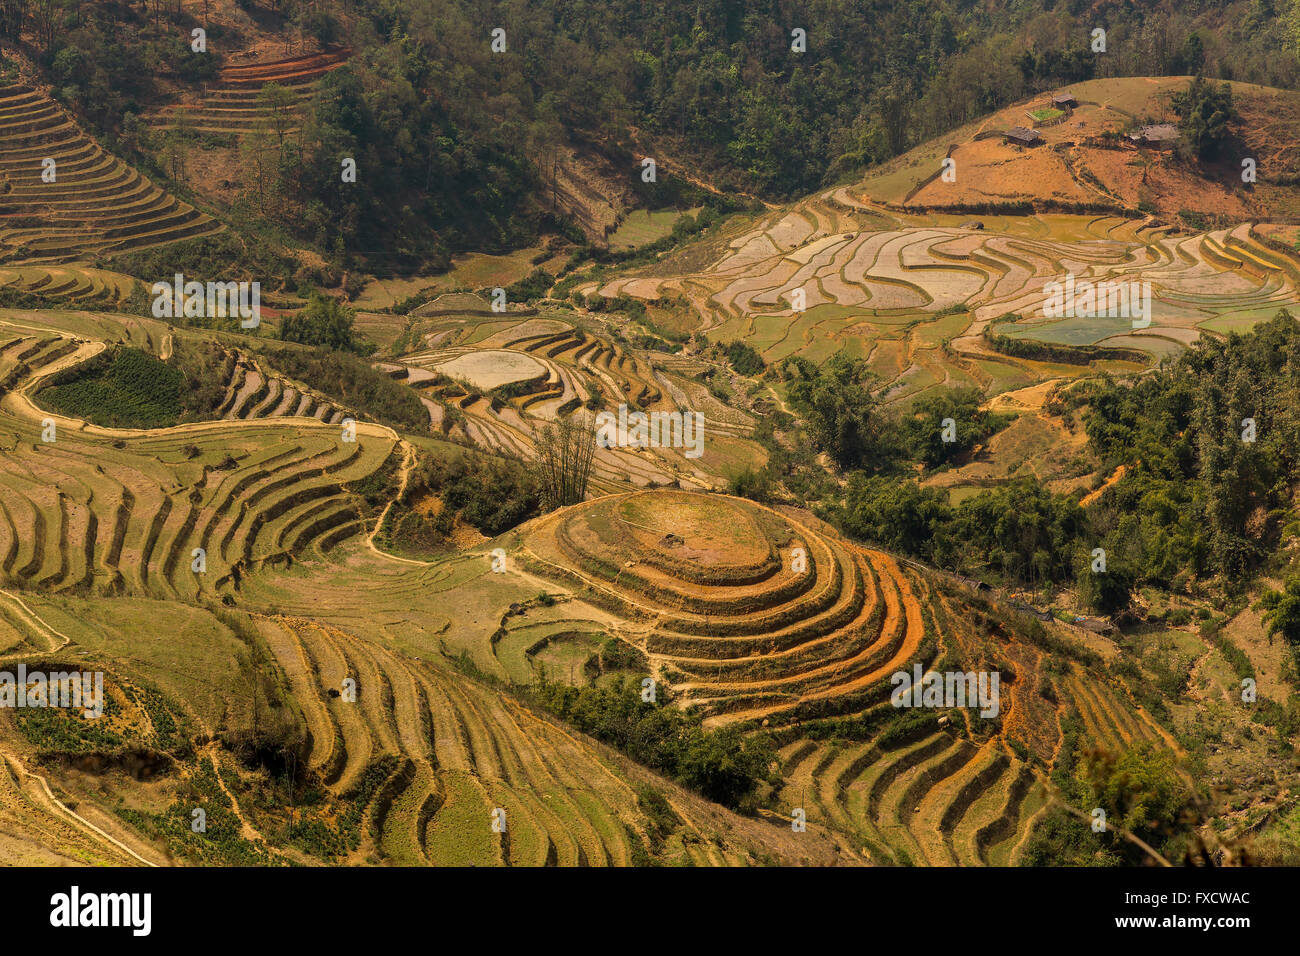 Paddy fields in SaPa - Stock Image